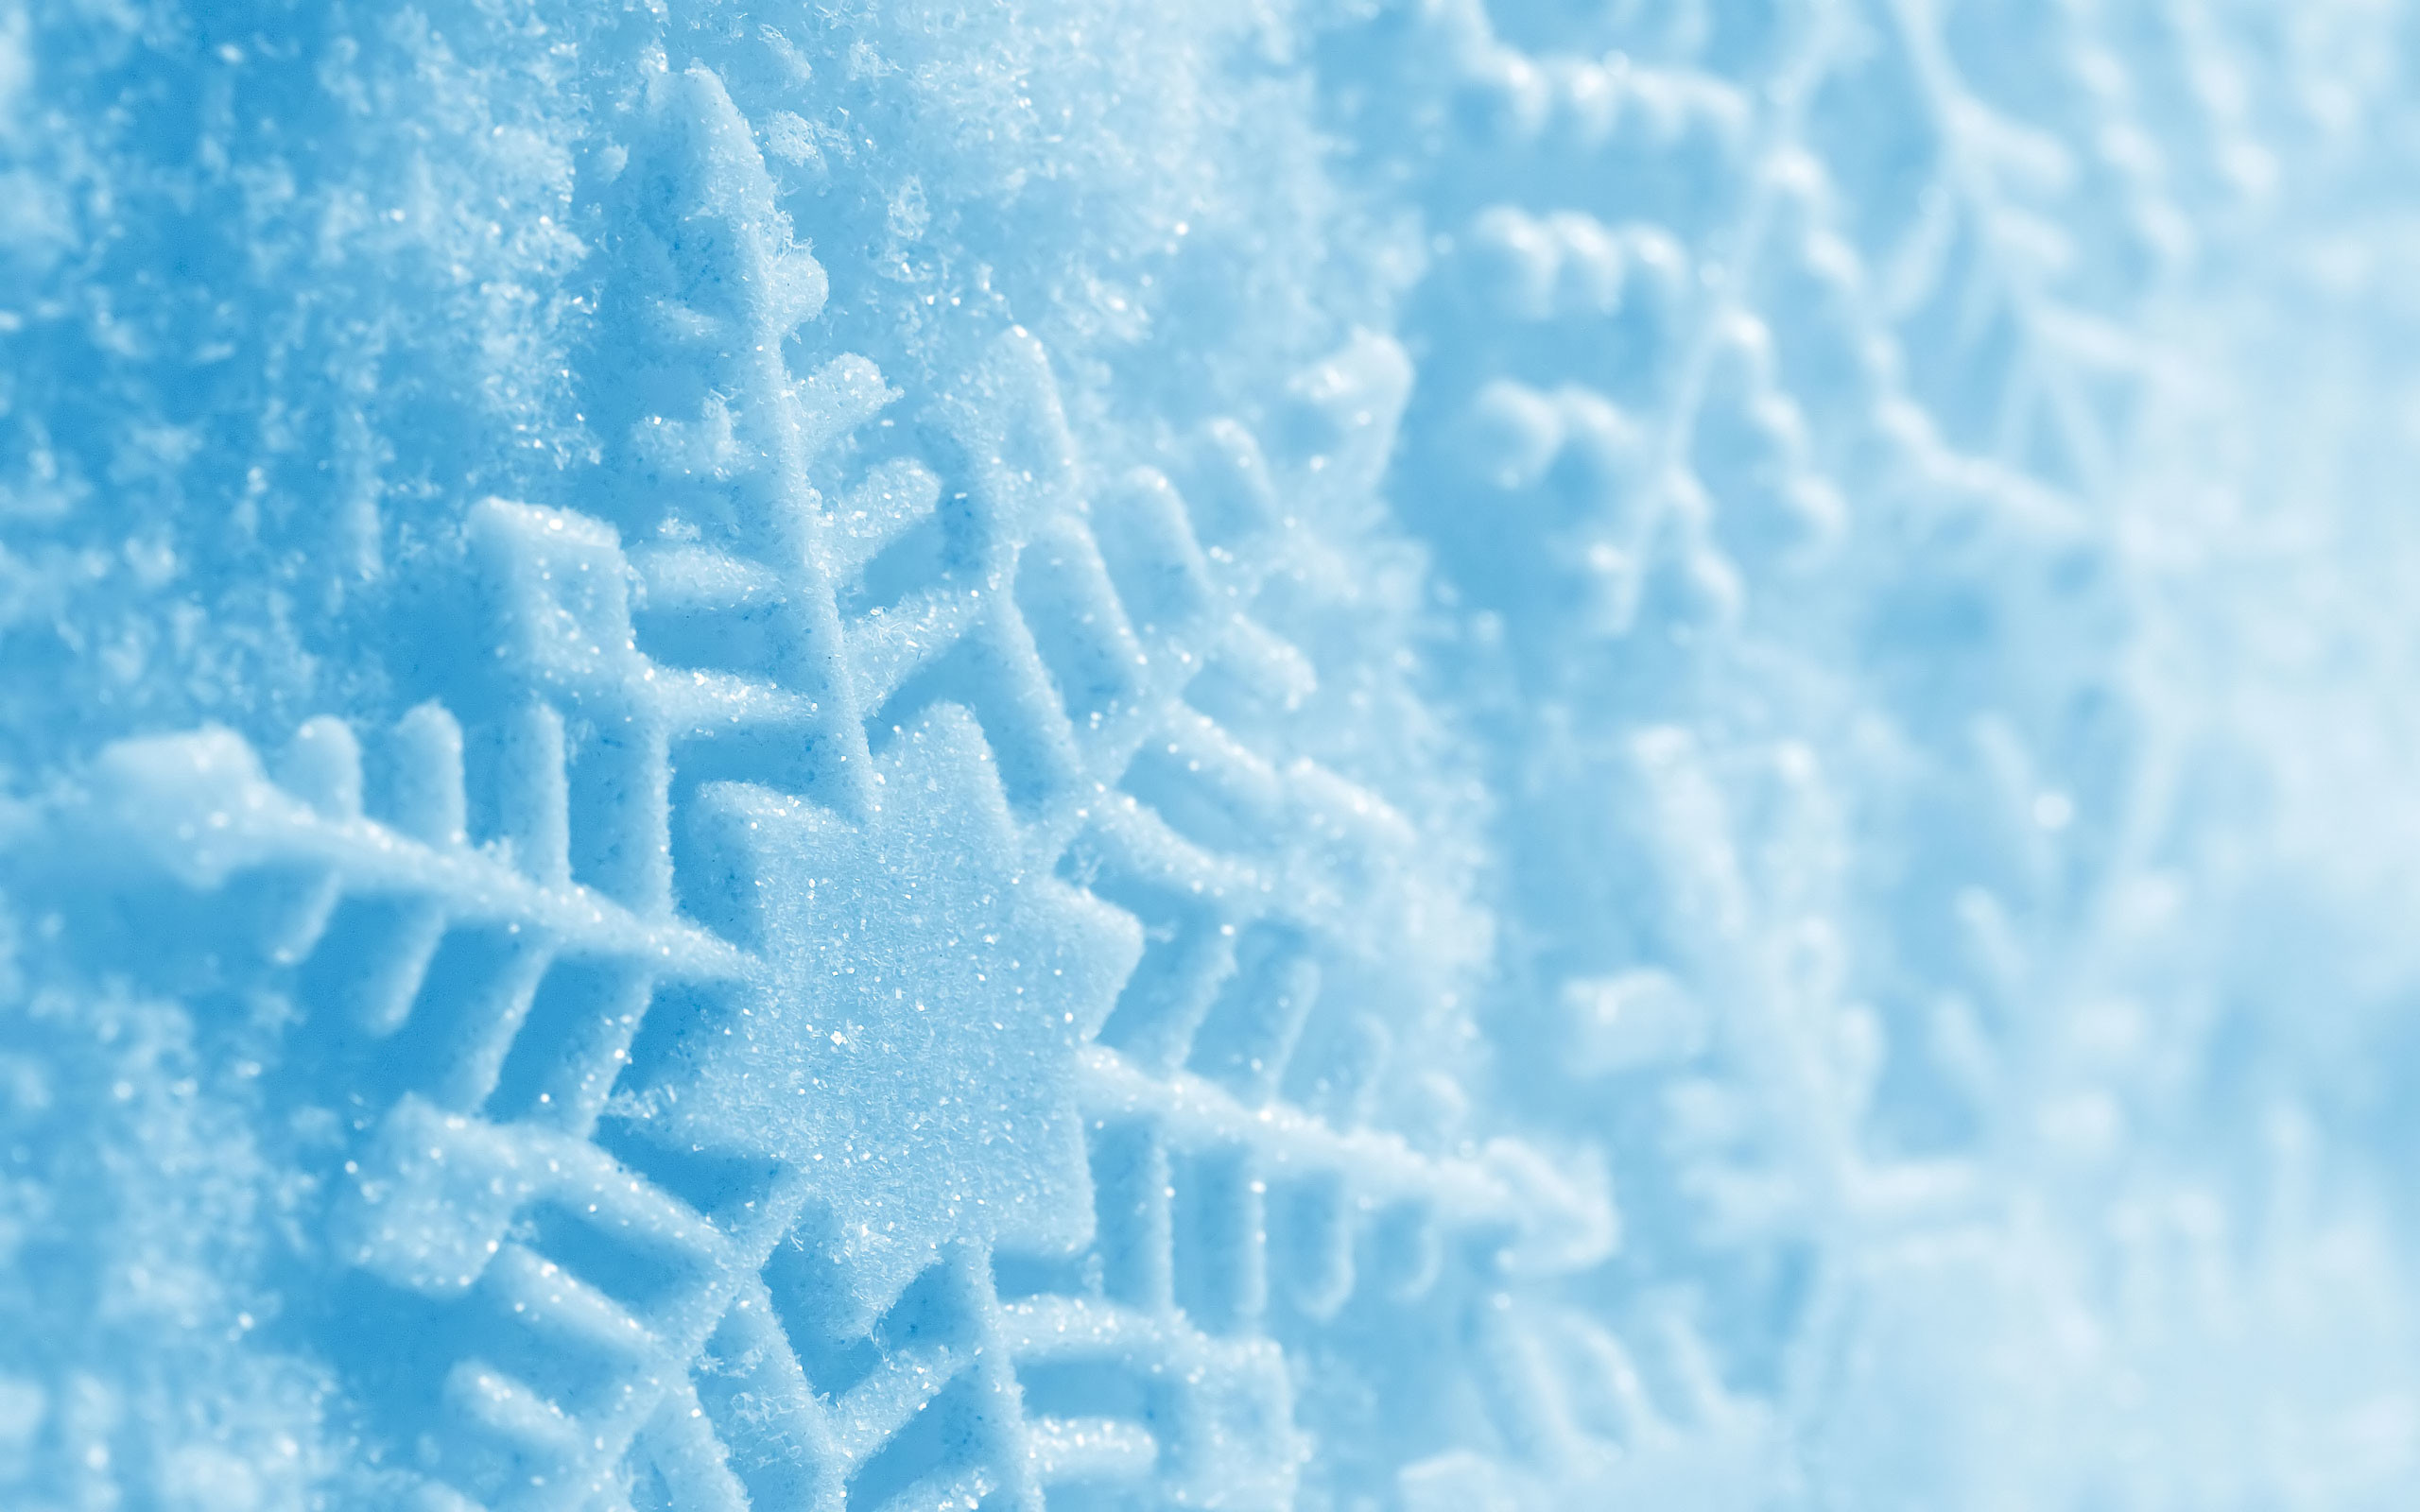 2560x1600 Snow Background, wallpaper, Snow Background hd wallpaper, background .